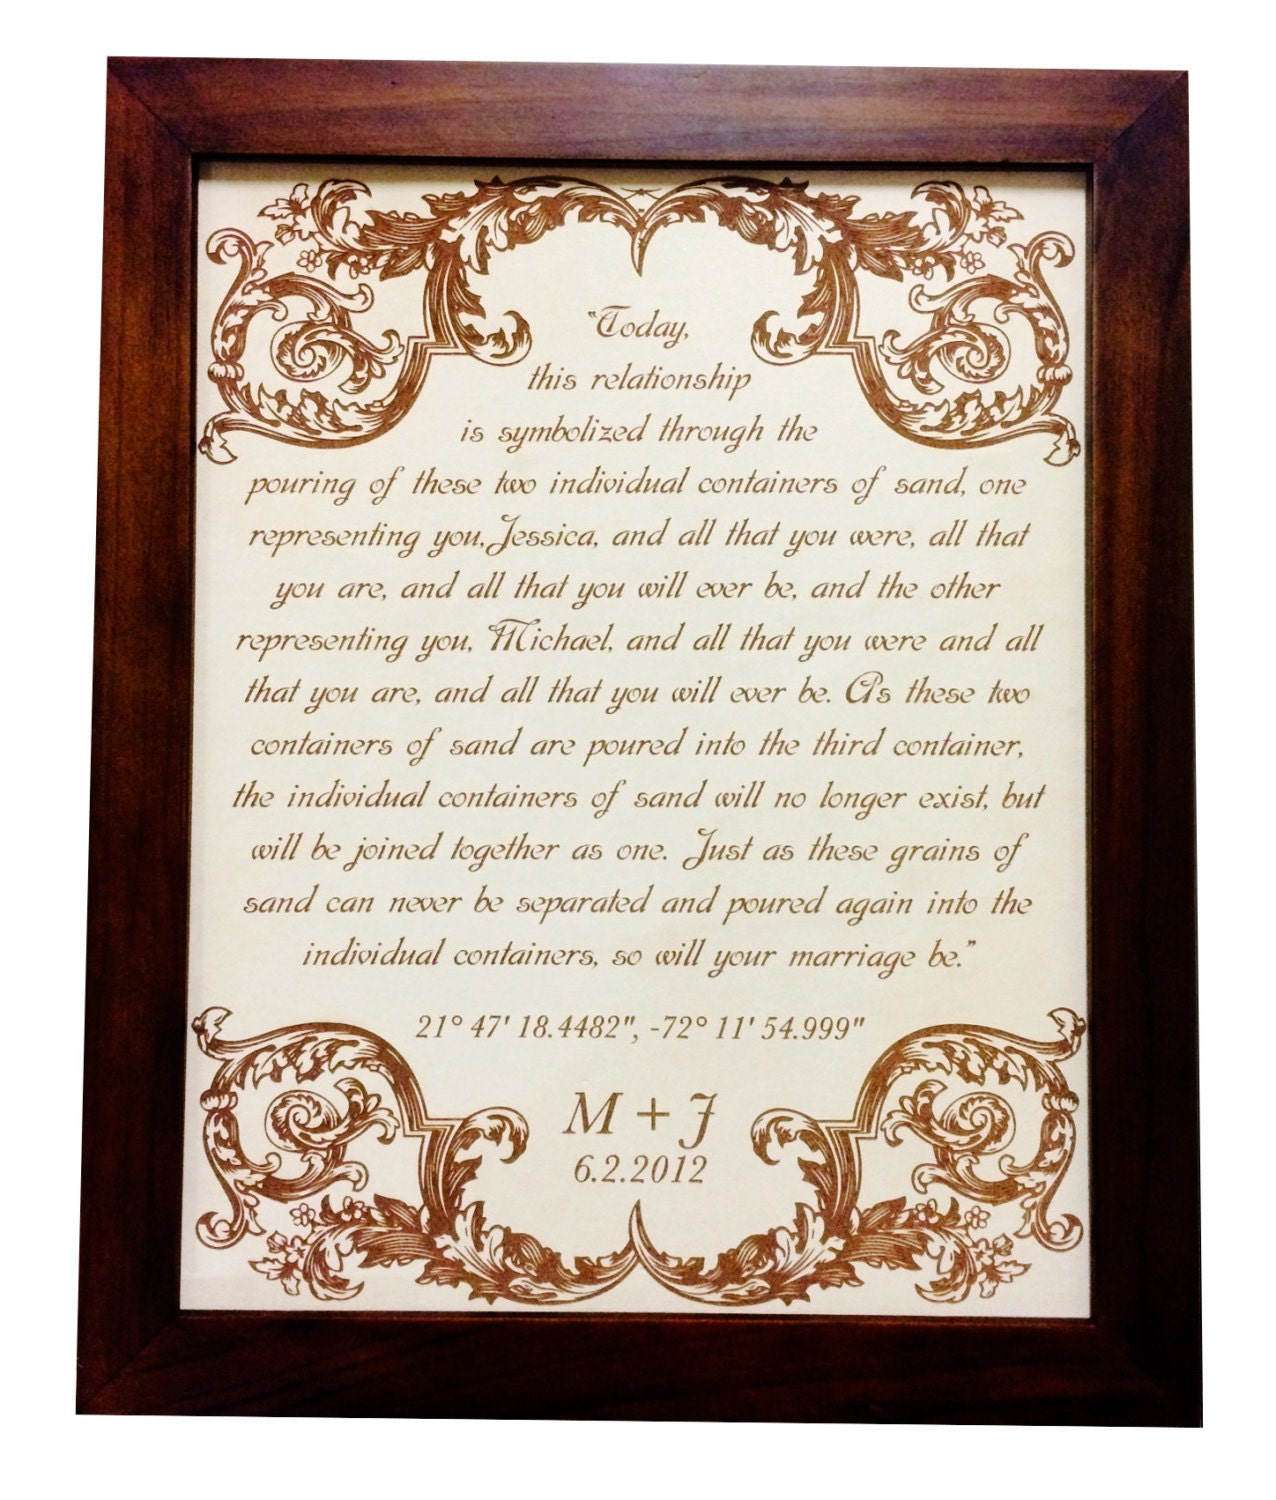 3rd Wedding Anniversary Traditional Gift: Leather Anniversary Gift Wedding Vows 3rd Anniversary Gift